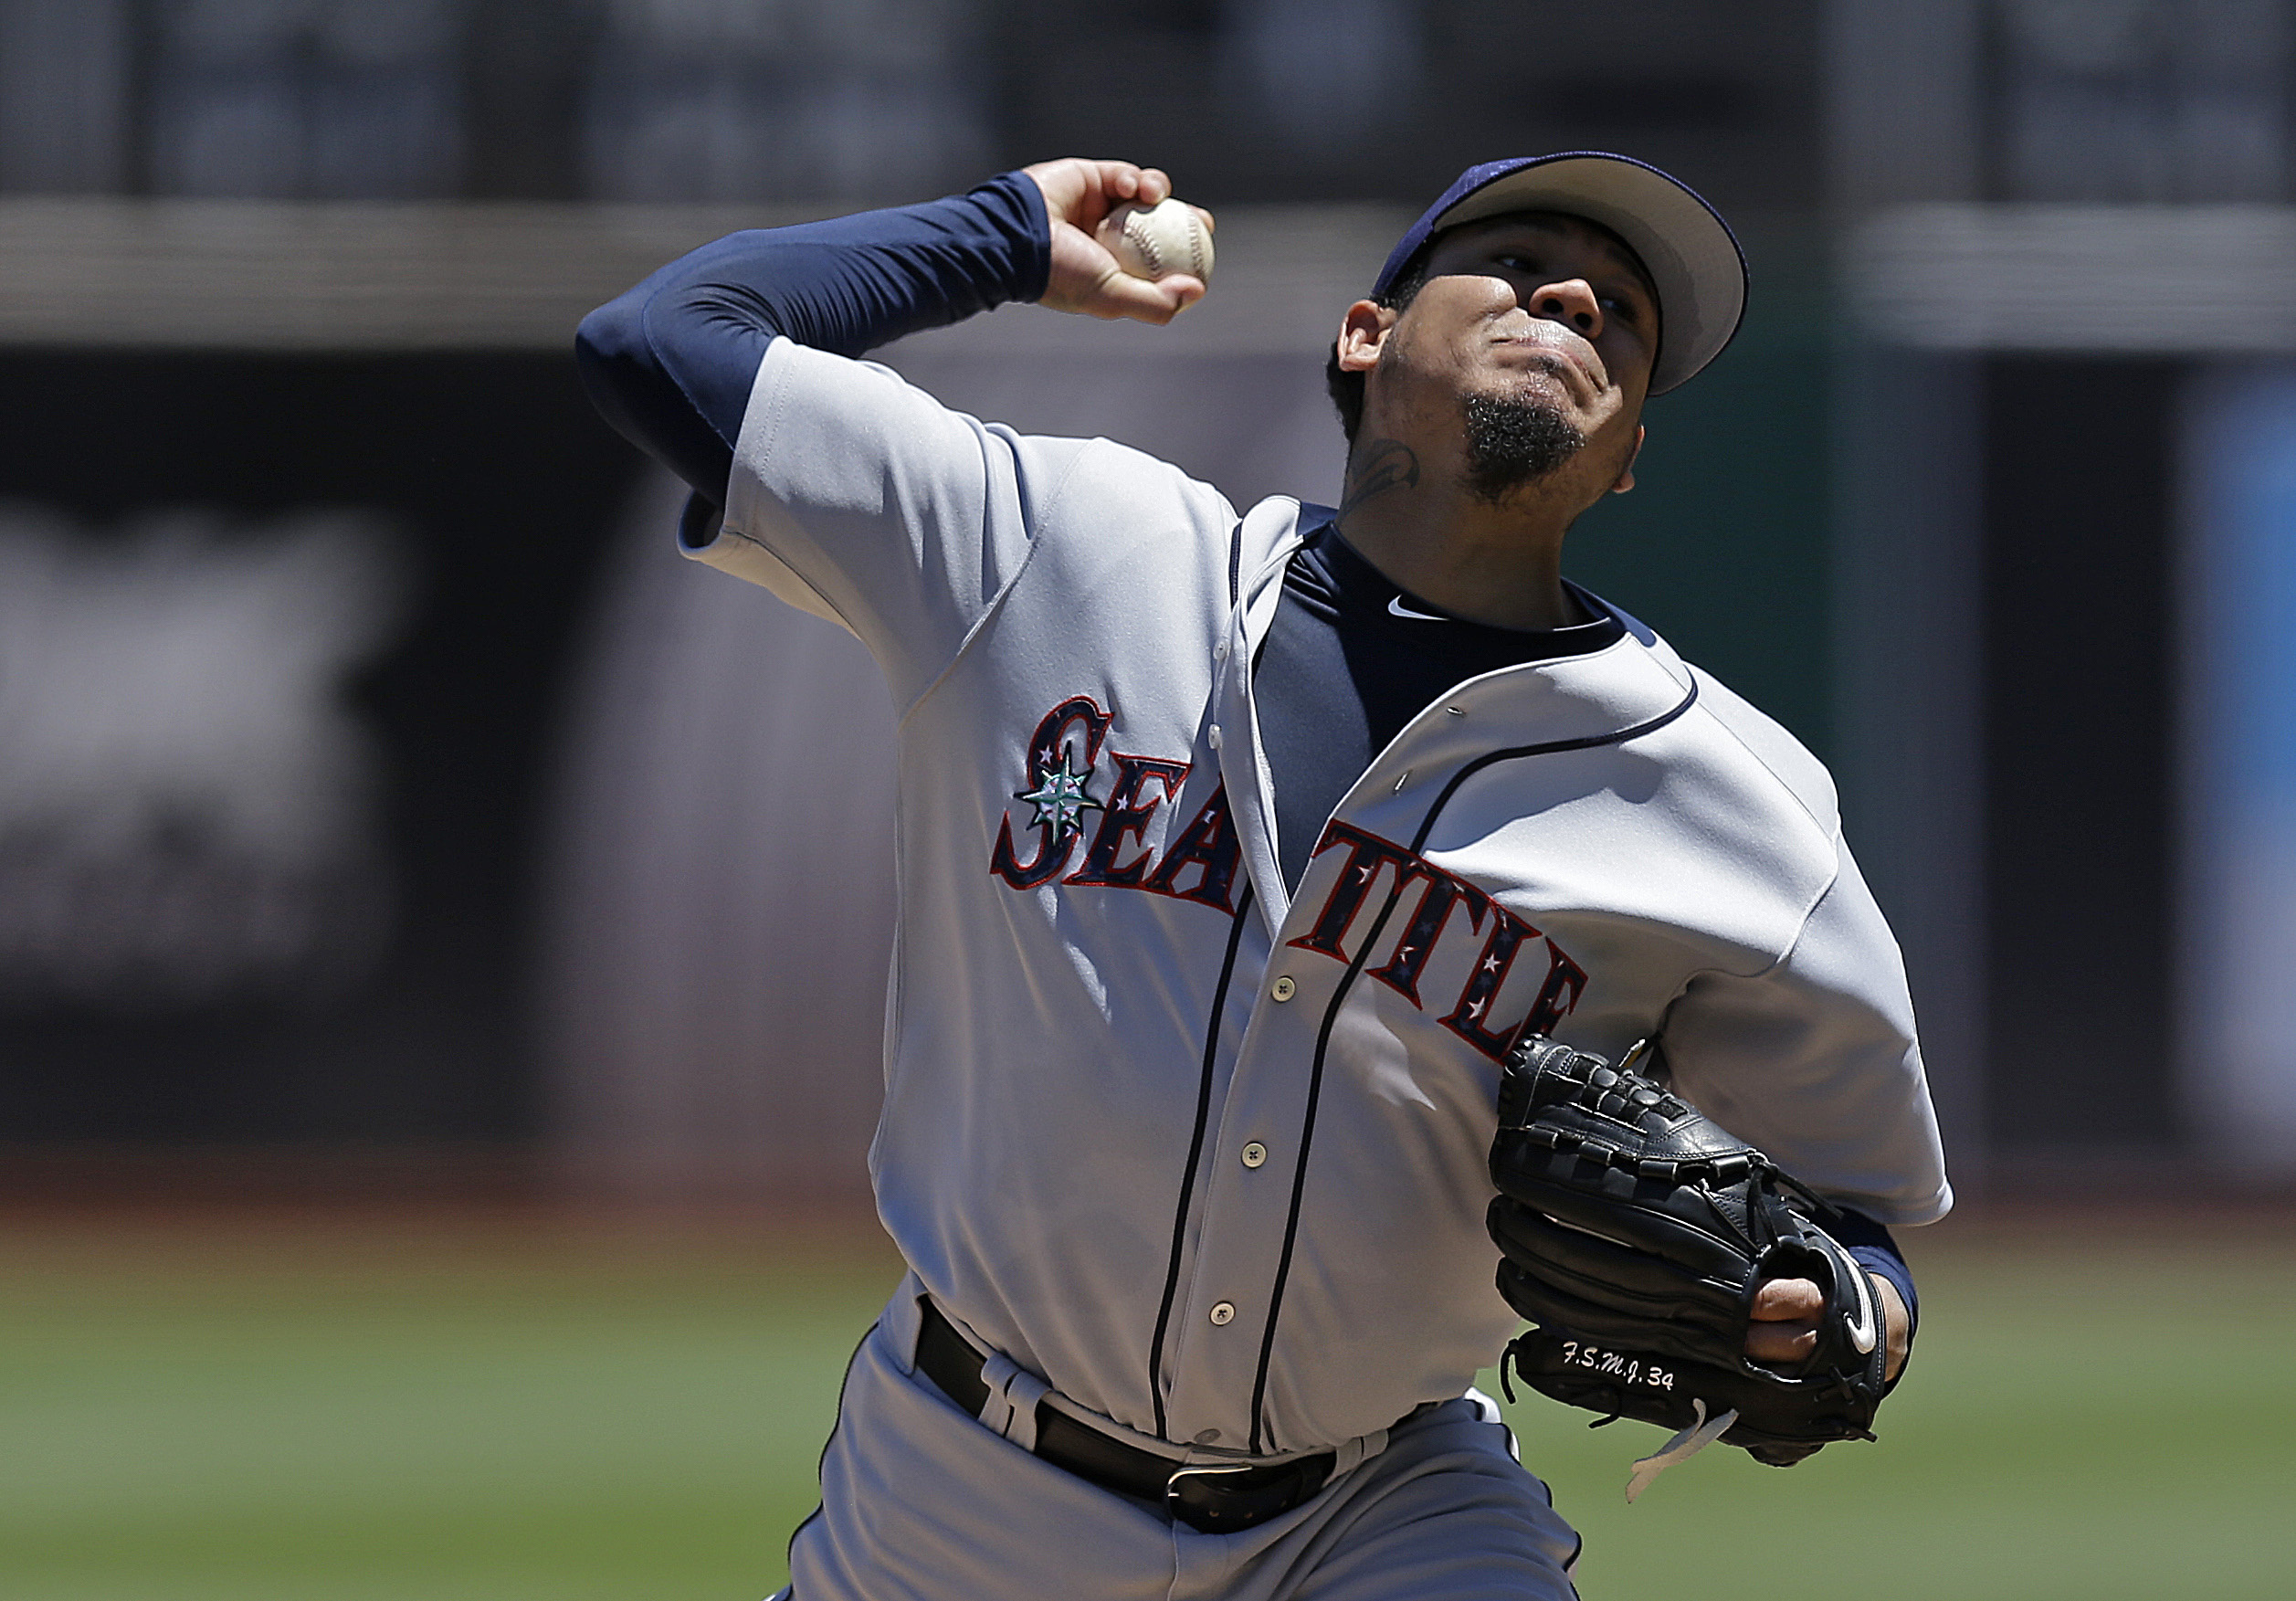 Seattle Mariners pitcher Felix Hernandez works against the Oakland Athletics in the first inning of a baseball game Saturday, July 4, 2015, in Oakland, Calif. (AP Photo/Ben Margot)